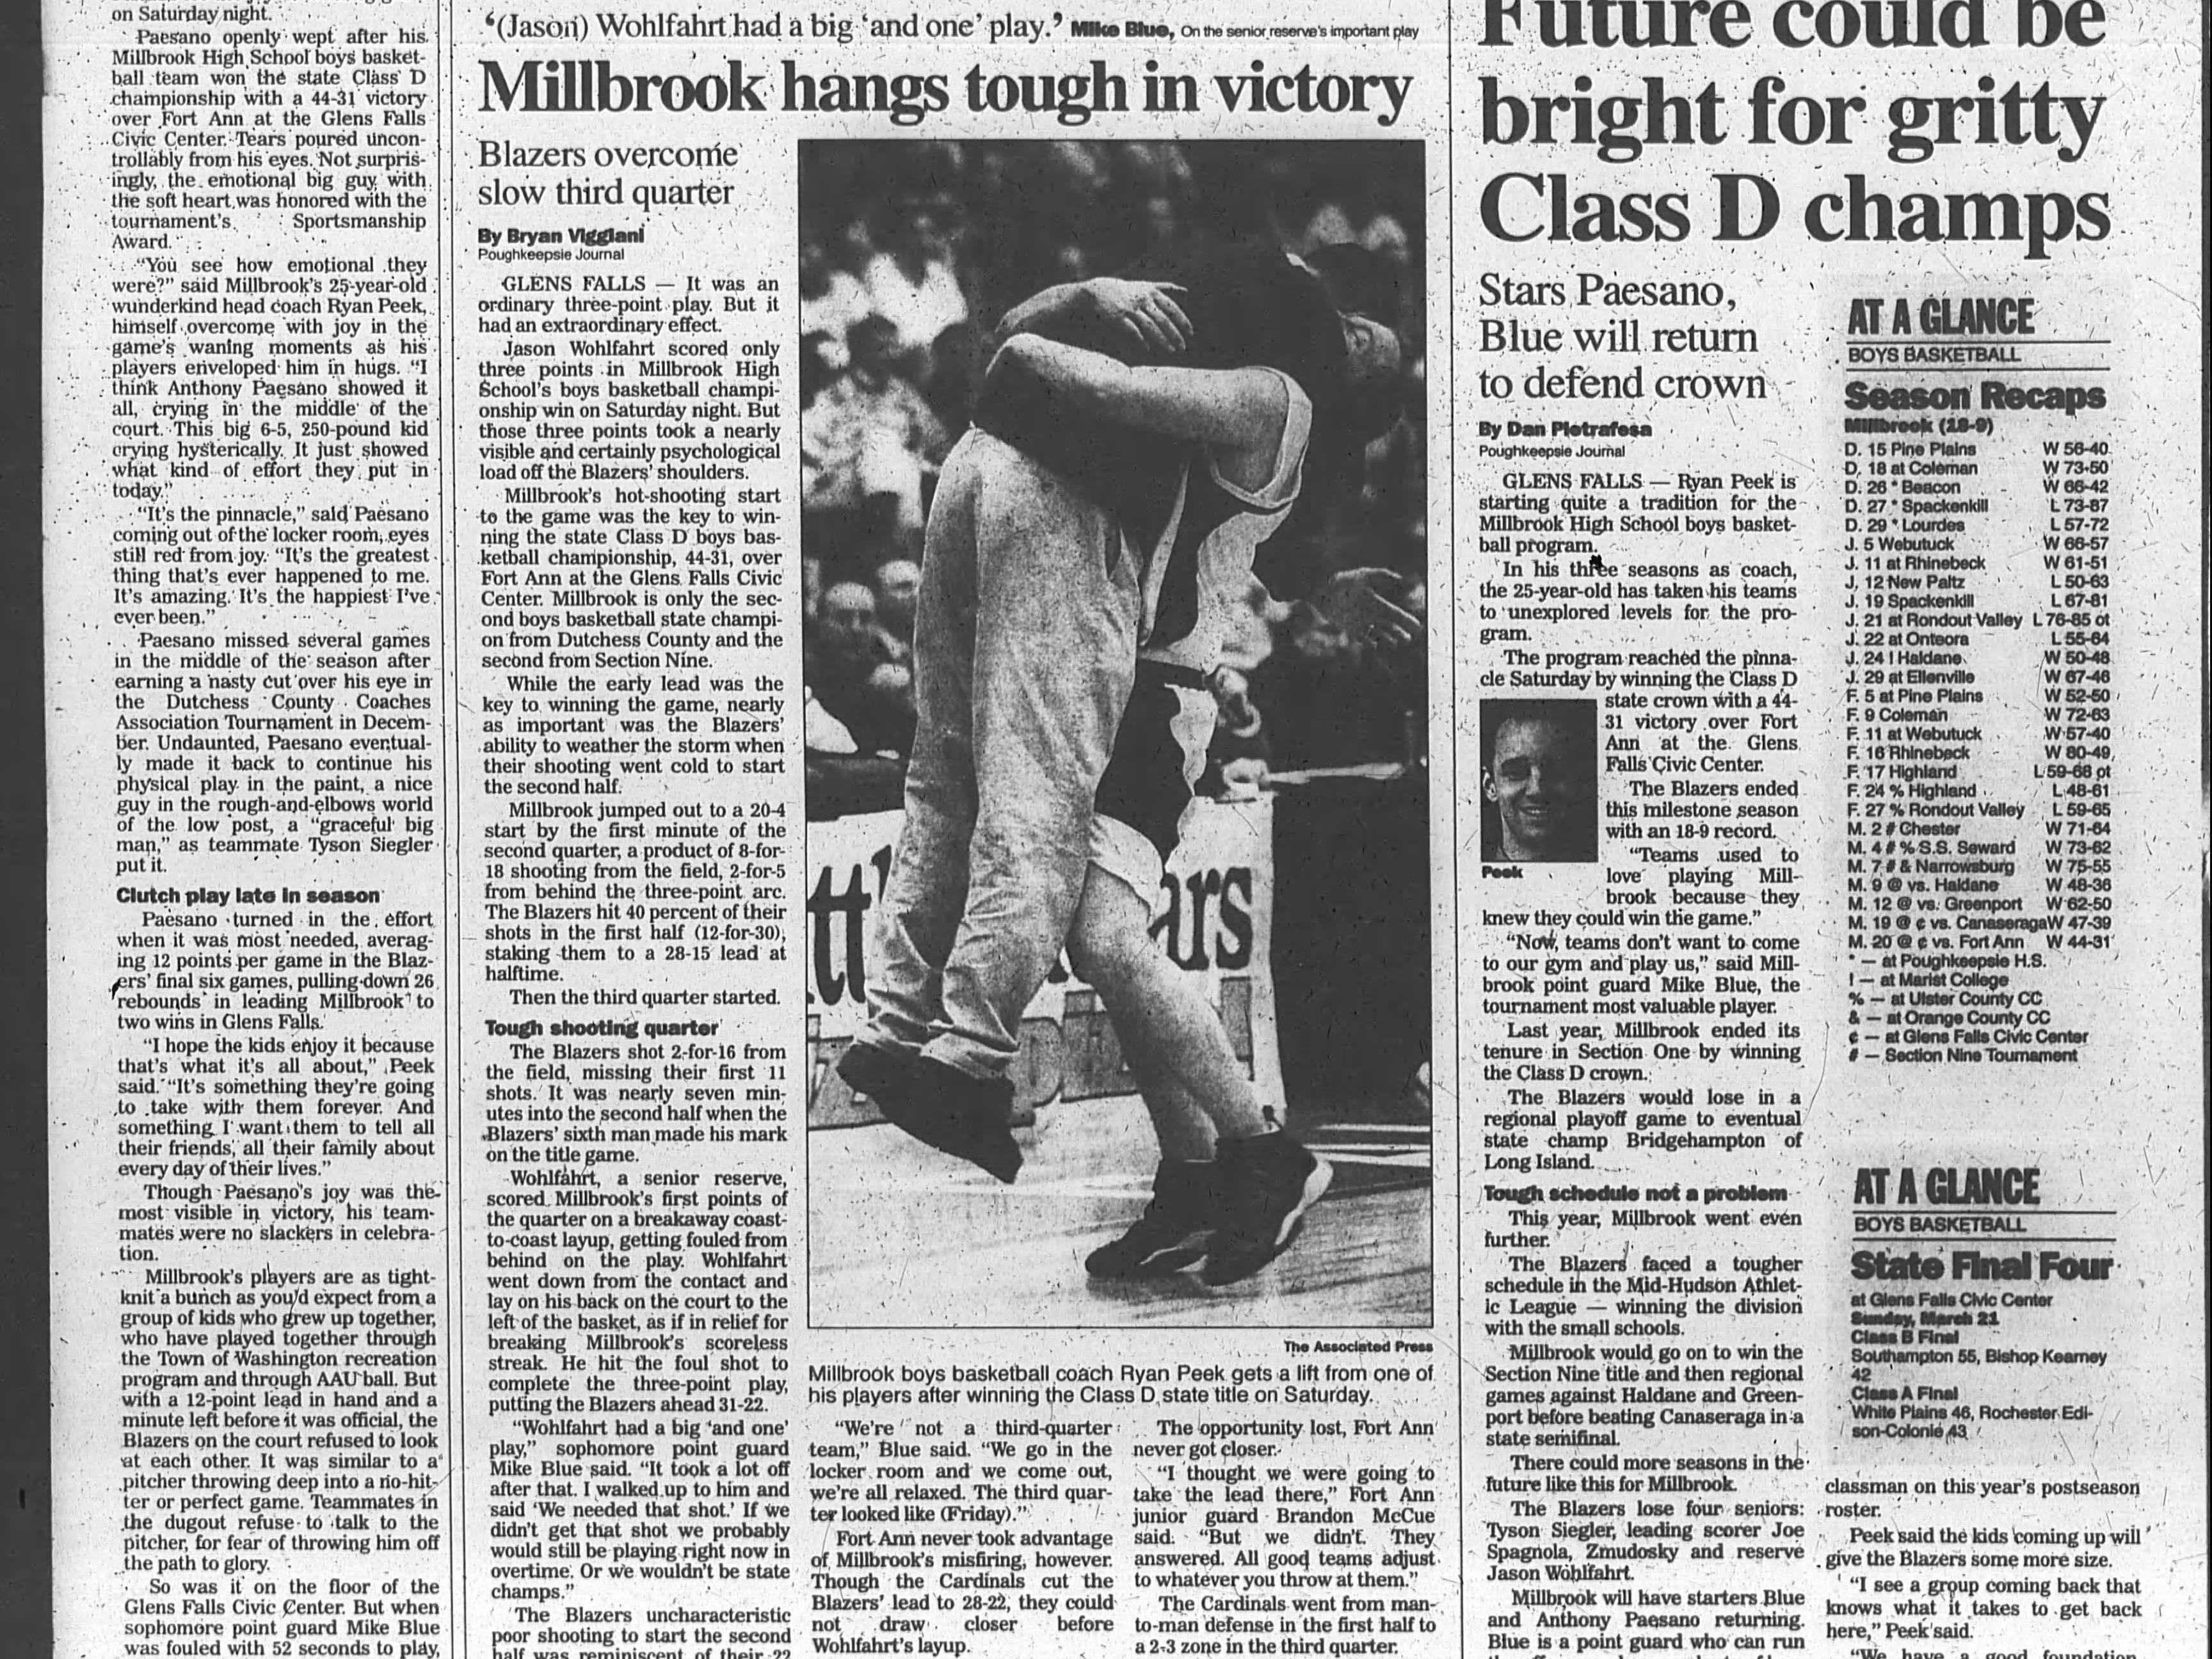 Journal clip highlighting Millbrook's New York State Class D championship in 1999.